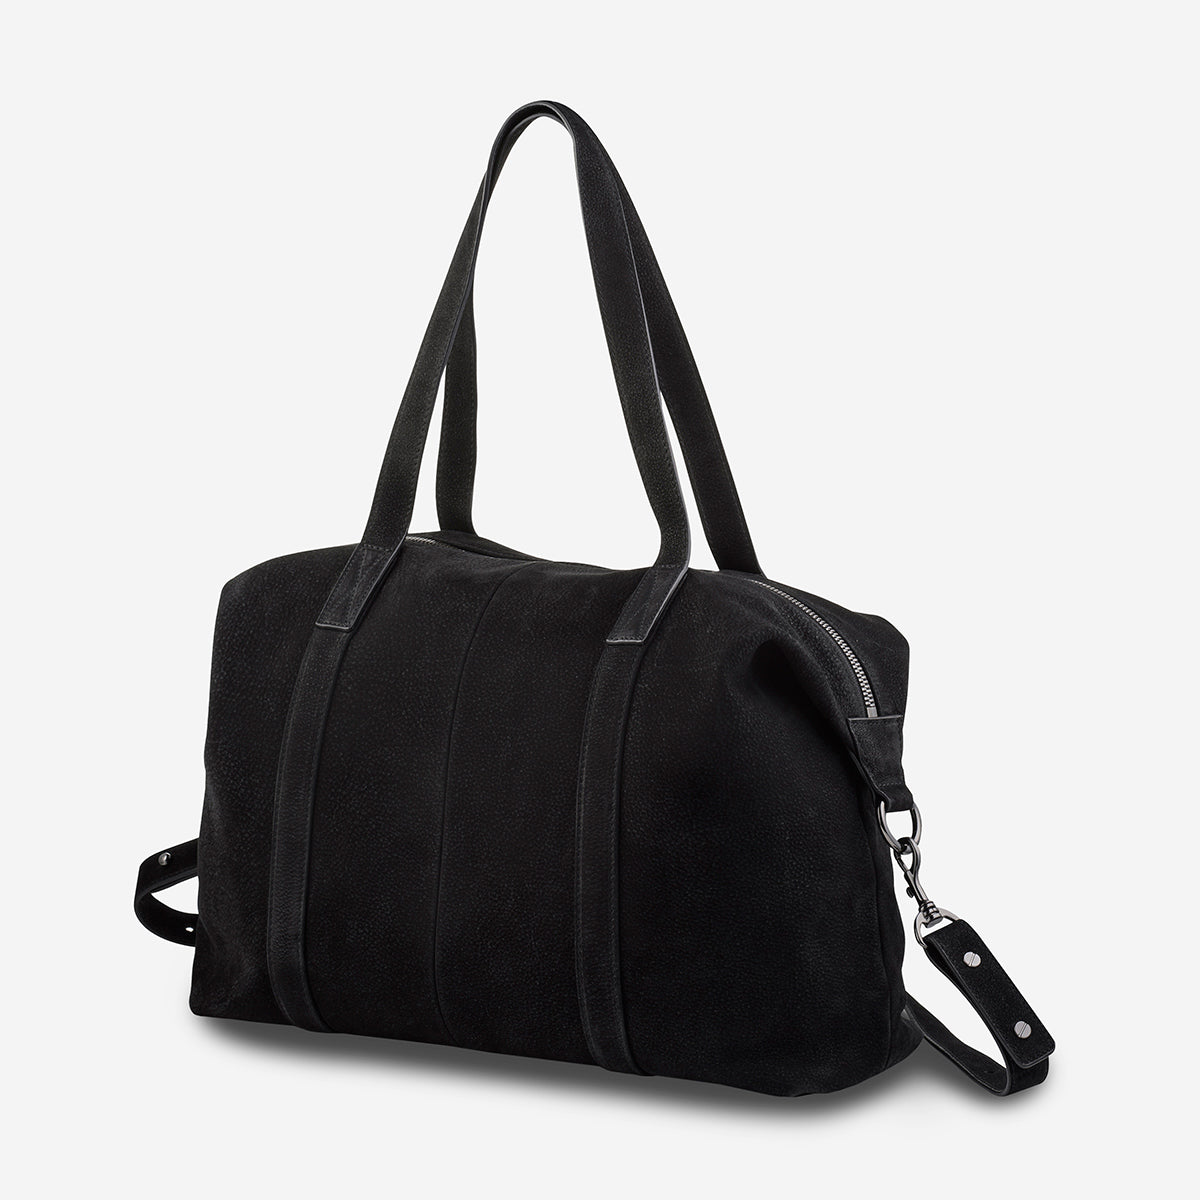 Status Anxiety Fall Of Hearts Leather Bag - Black